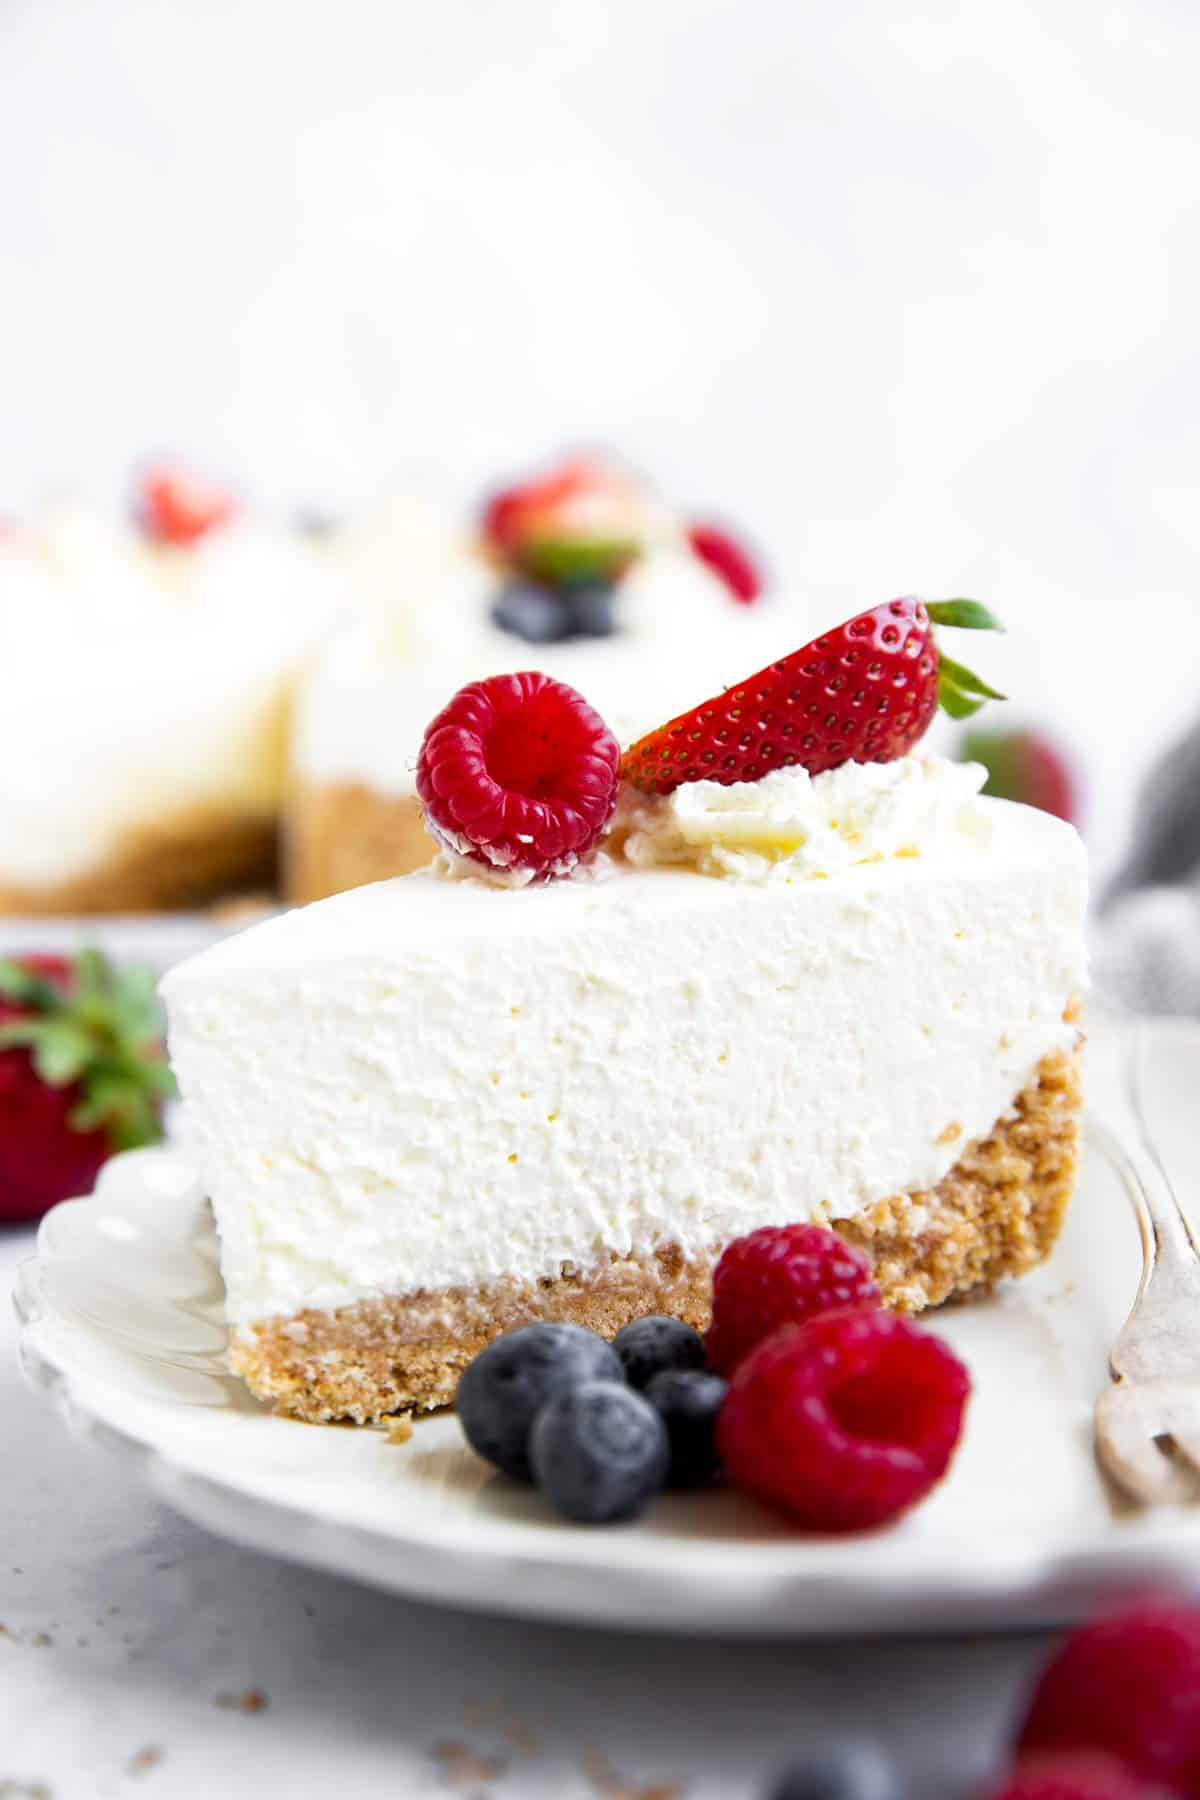 slice of no bake cheesecake with berries